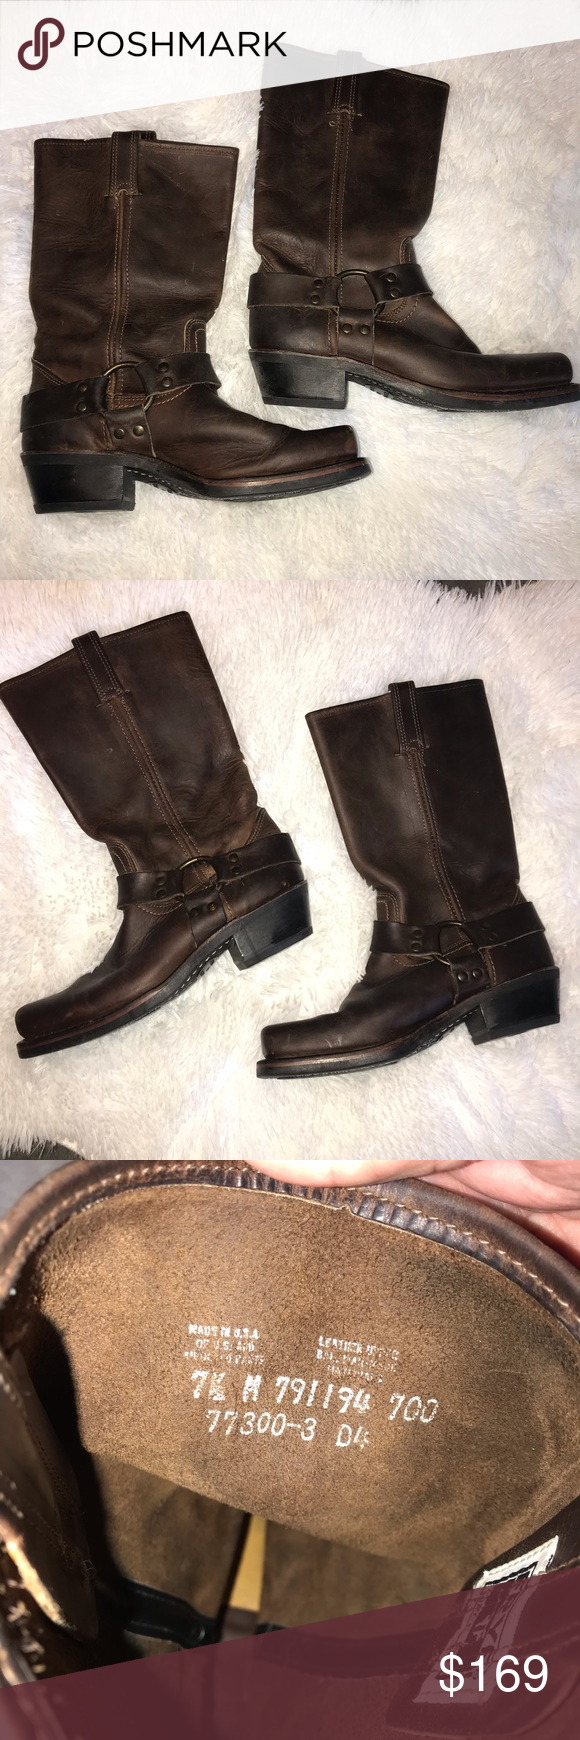 VGUC Frye Harness 12R Brown Leather Boot Frye Harness 12R Boot in size 7.5! These have been very gen...